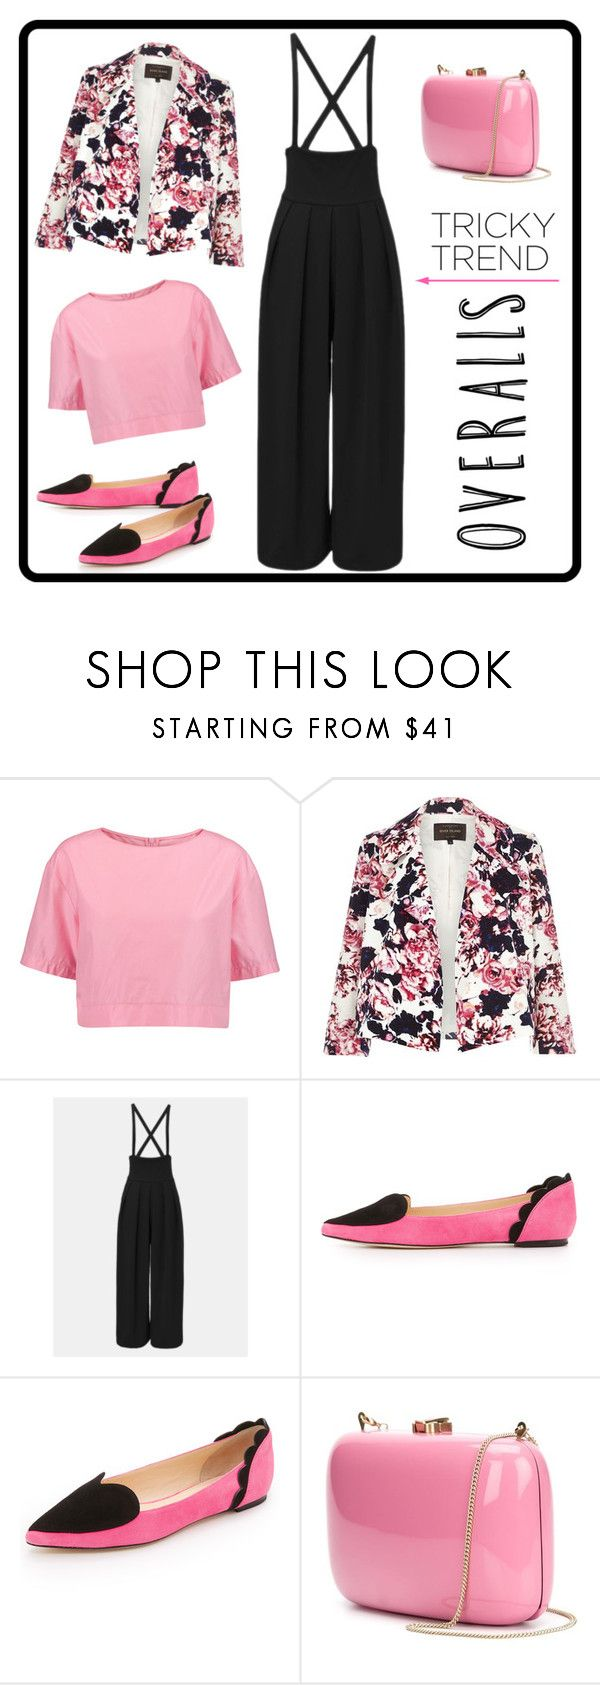 """Untitled #1485"" by aly53-1 ❤ liked on Polyvore featuring Marni, River Island, Isa Tapia, Rocio, TrickyTrend and overalls"